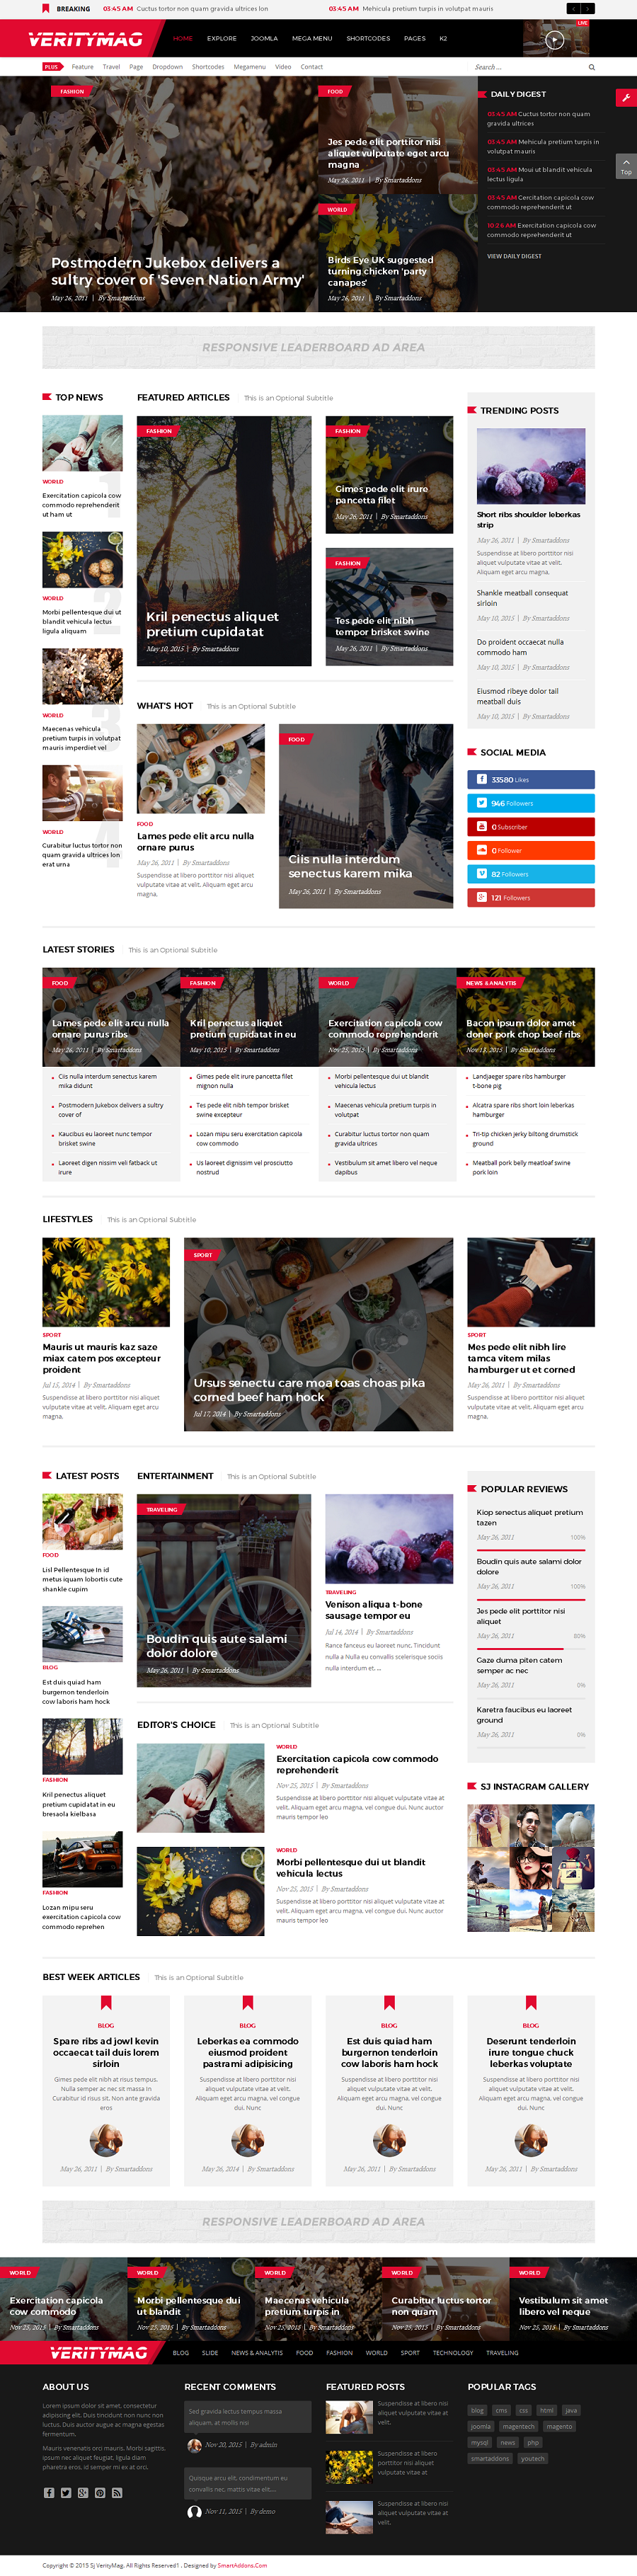 SJ VerityMag - Free Responsive Joomla news magazine Template - 02_home1.png